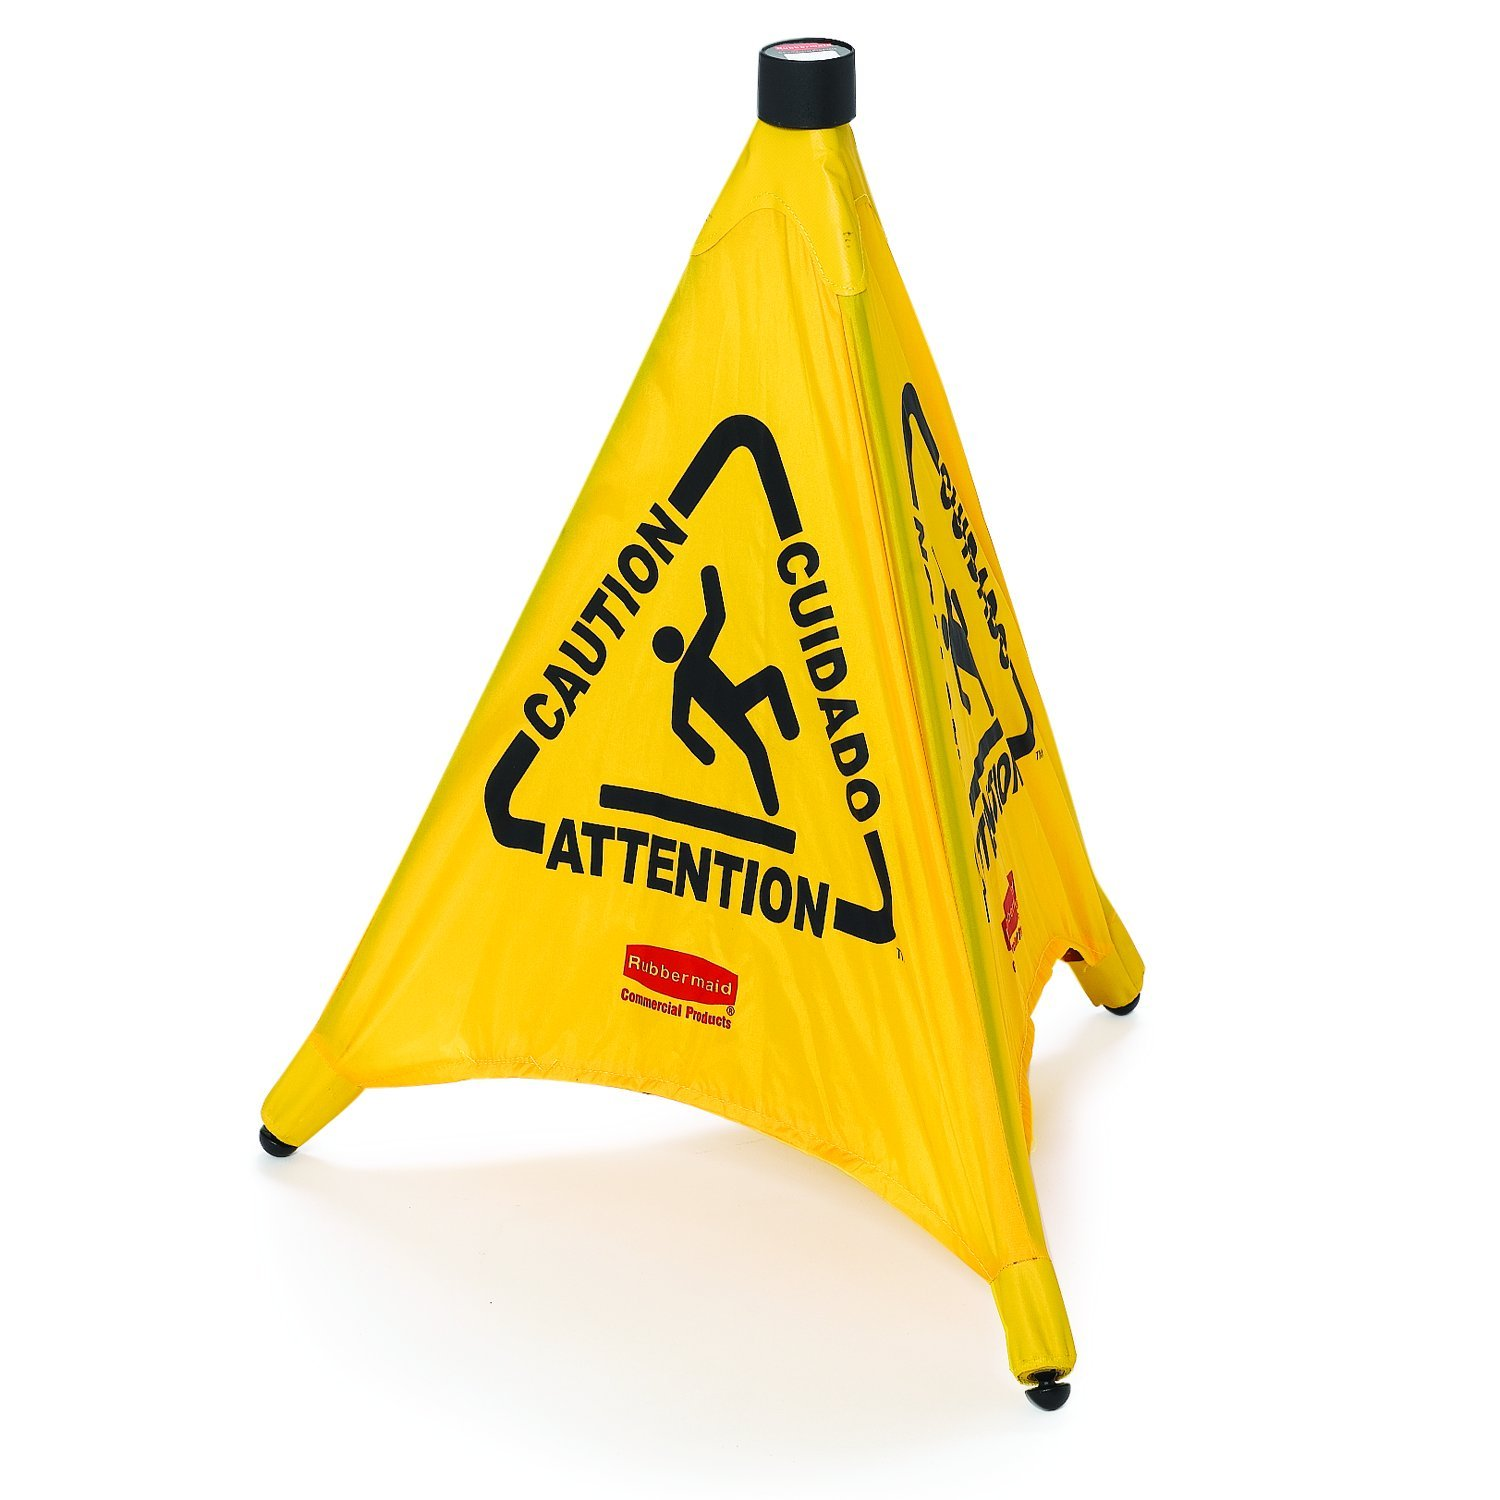 Rubbermaid Commercial Yellow Pop-Up Safety Cone with Multi-Lingual Caution Imprint and Wet Floor Symbol (FG9S0000YEL)